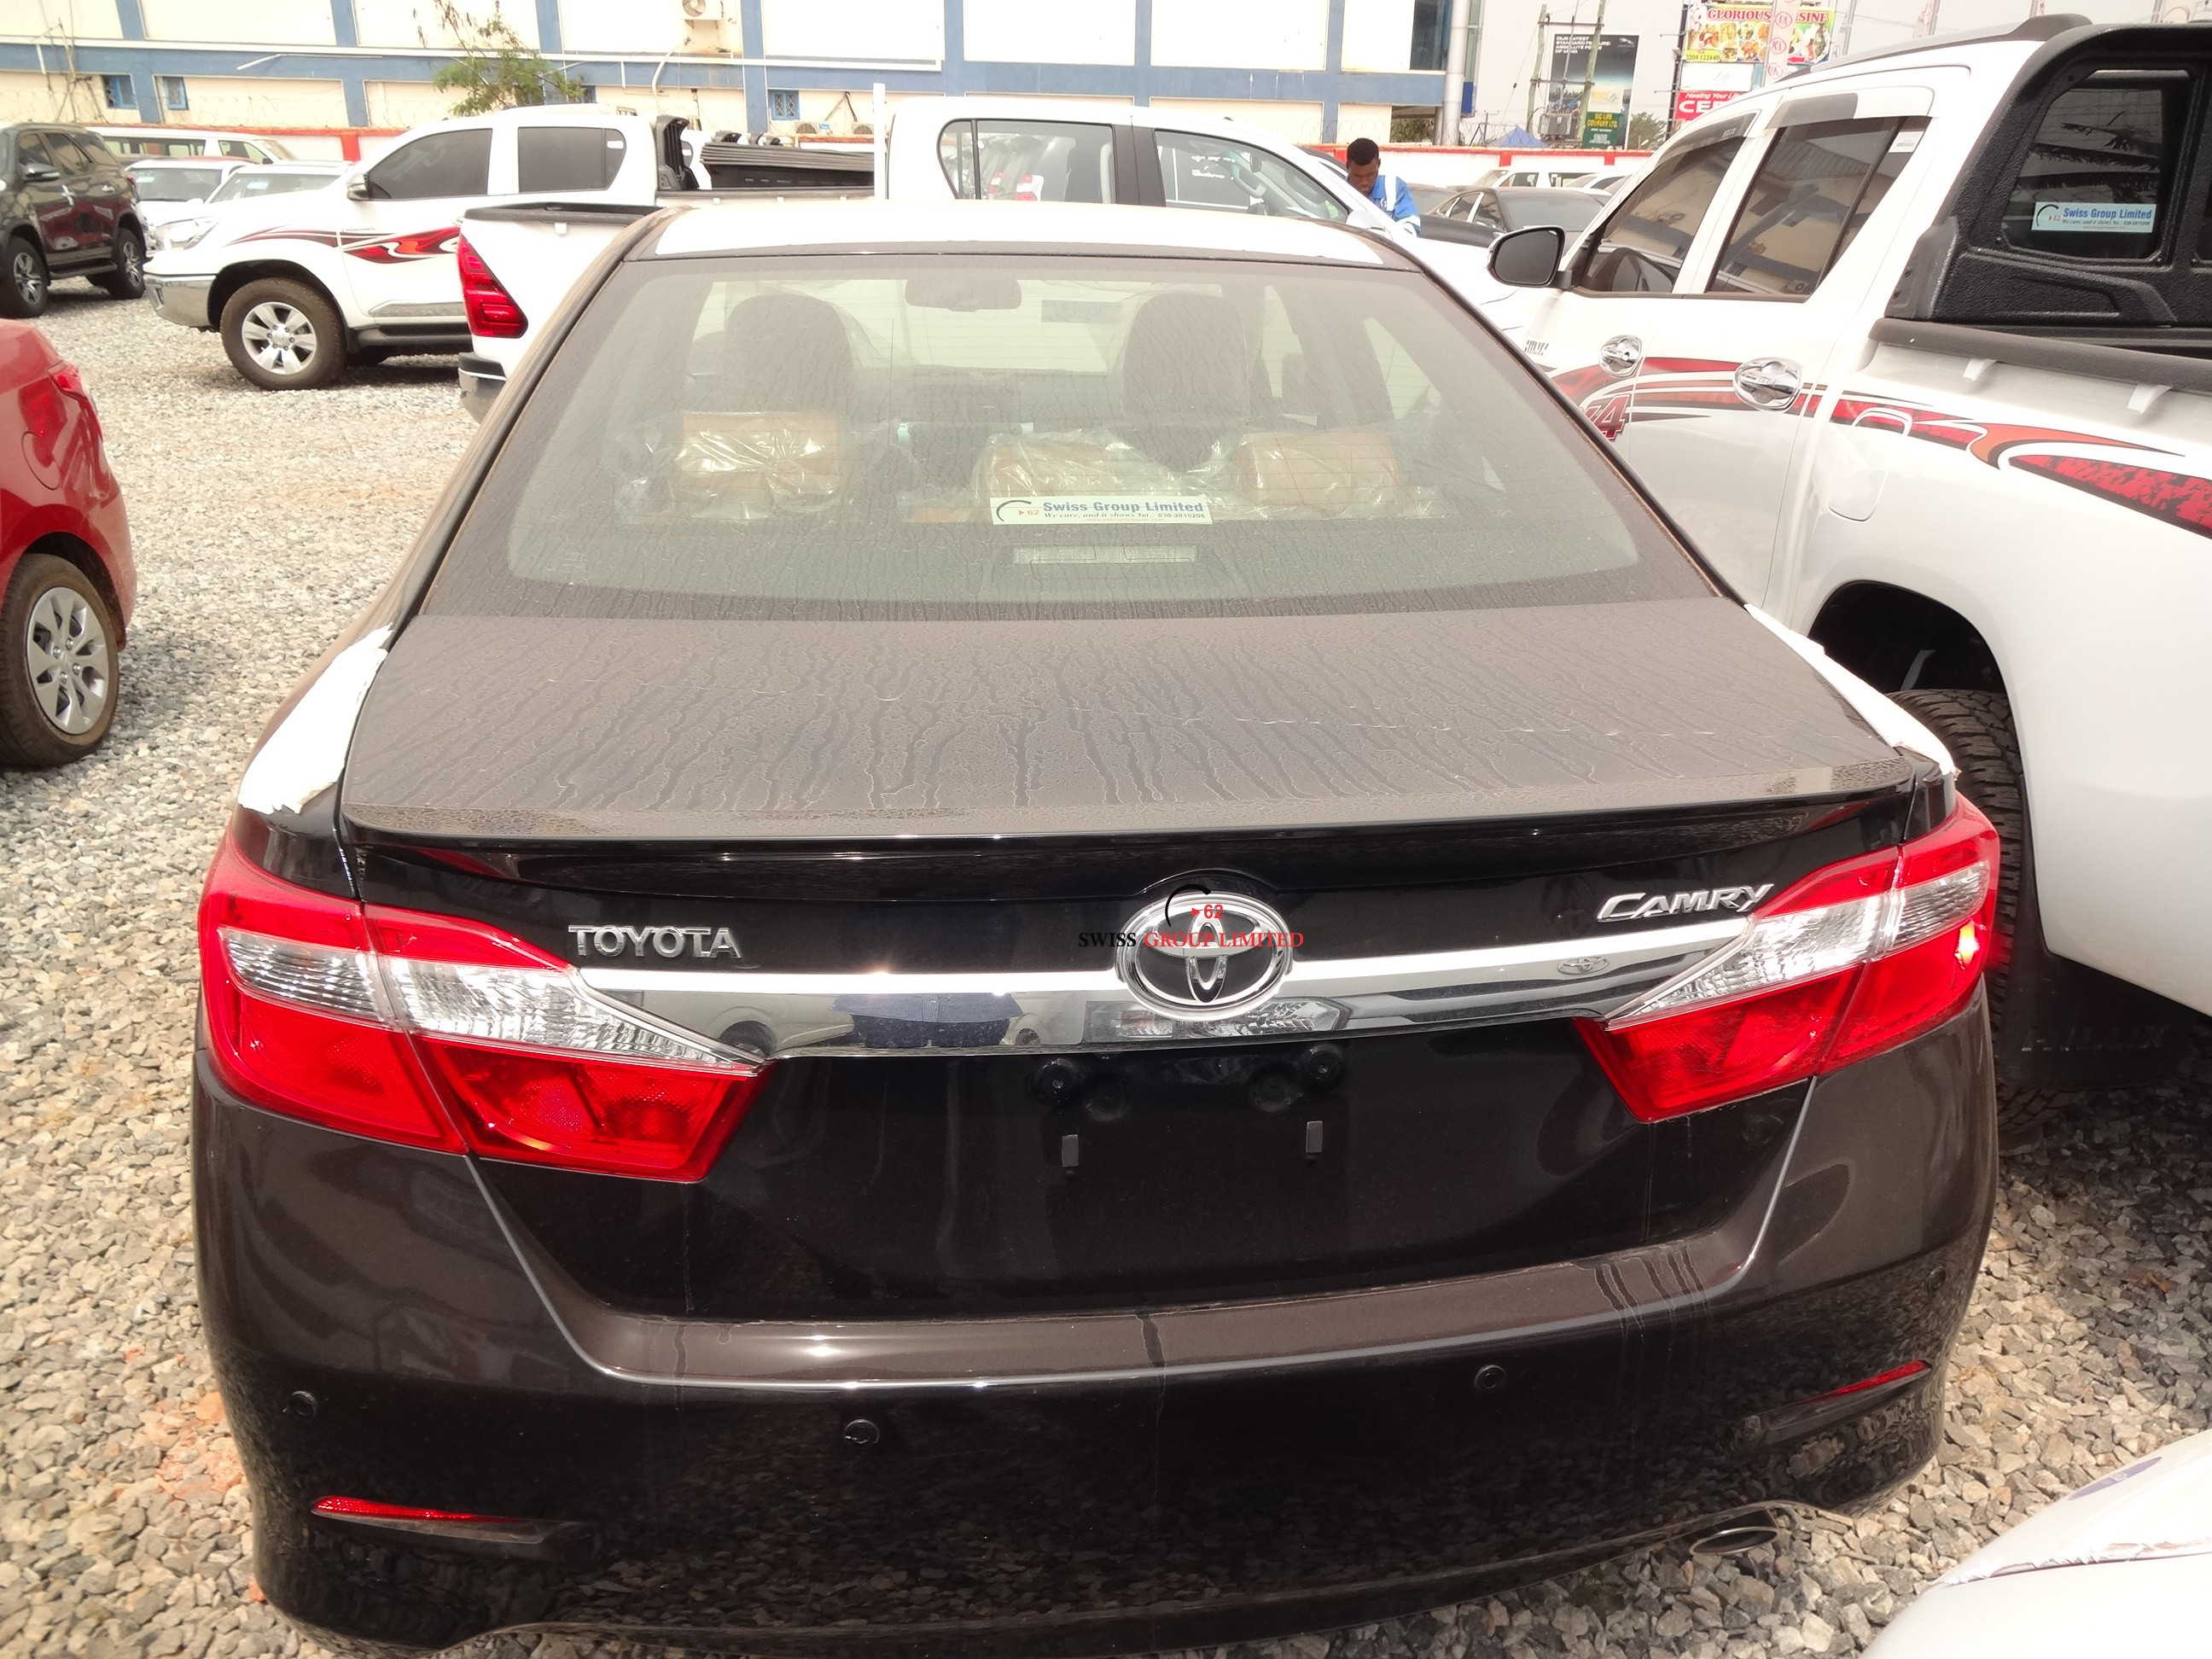 toyota camry – swiss group limited